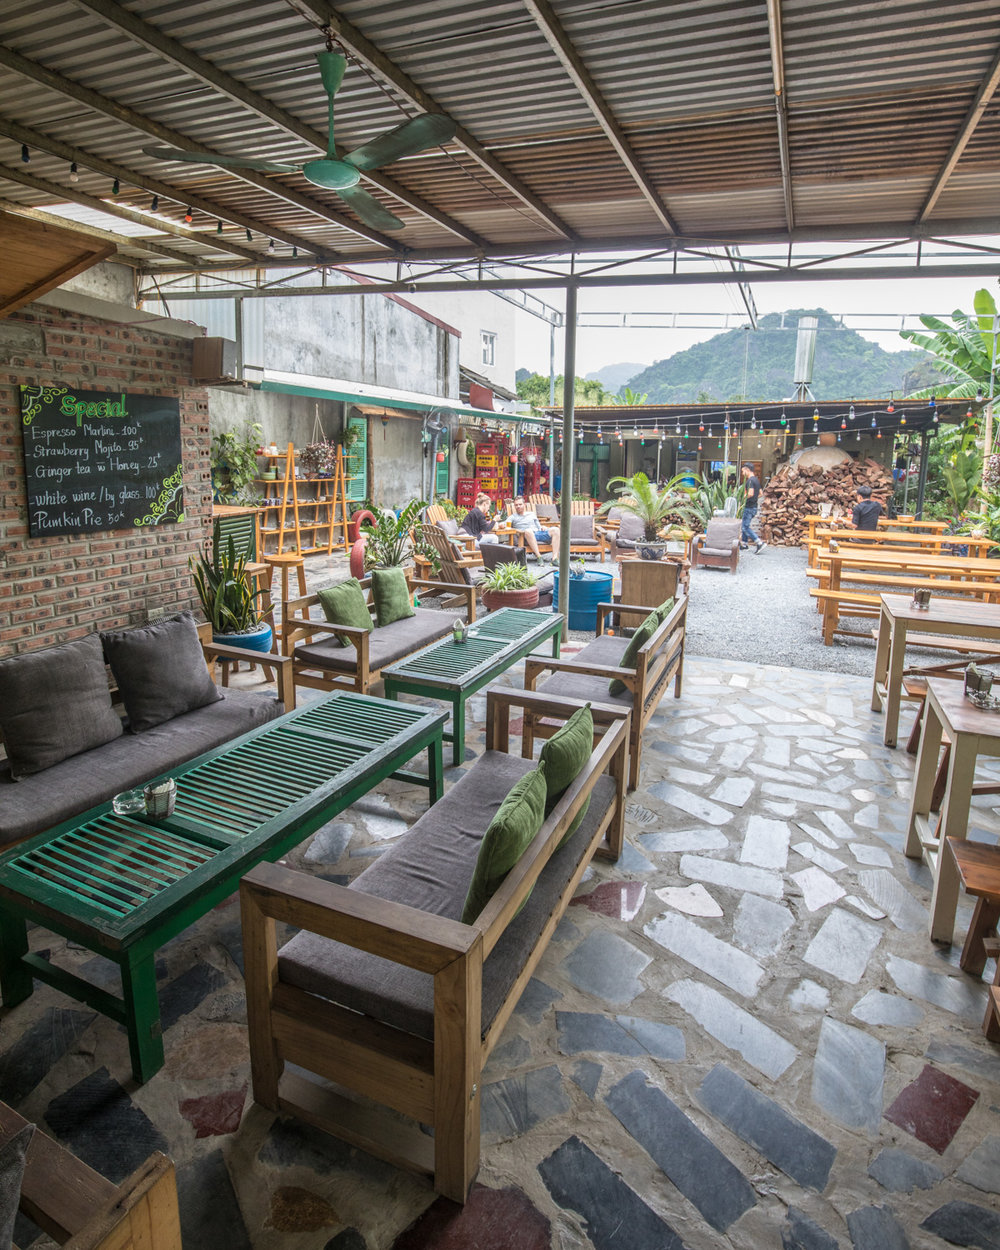 Chookies beer garden, Ninh Binh Vietnam